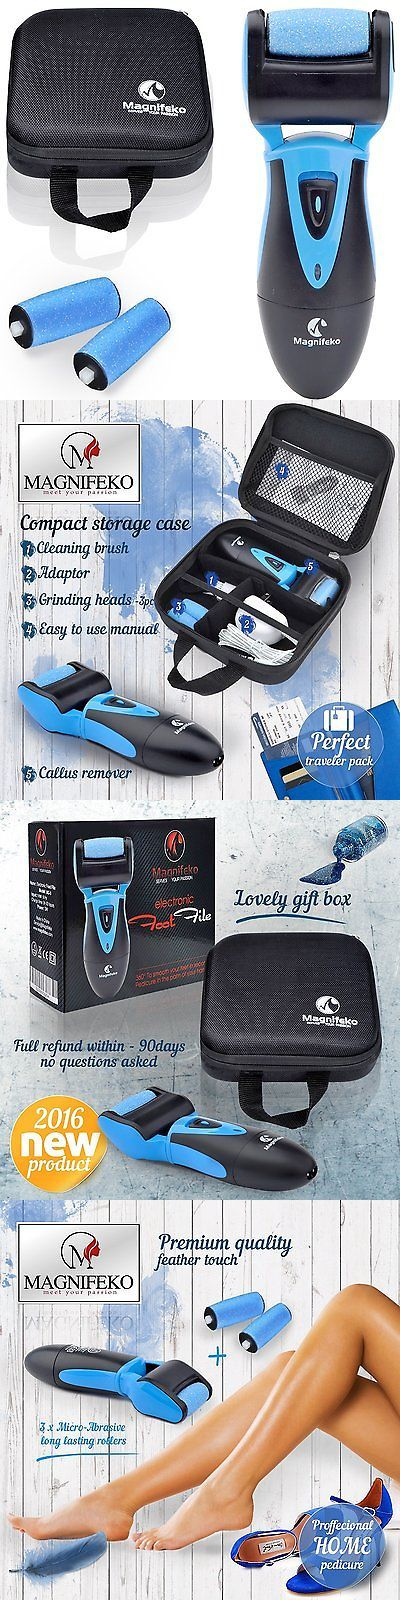 Manicure Pedicure Tools and Kits: Safe And Painless , Electric Callus Remover ,Foot File And Pedicure Tools For 3 -> BUY IT NOW ONLY: $37.07 on eBay!